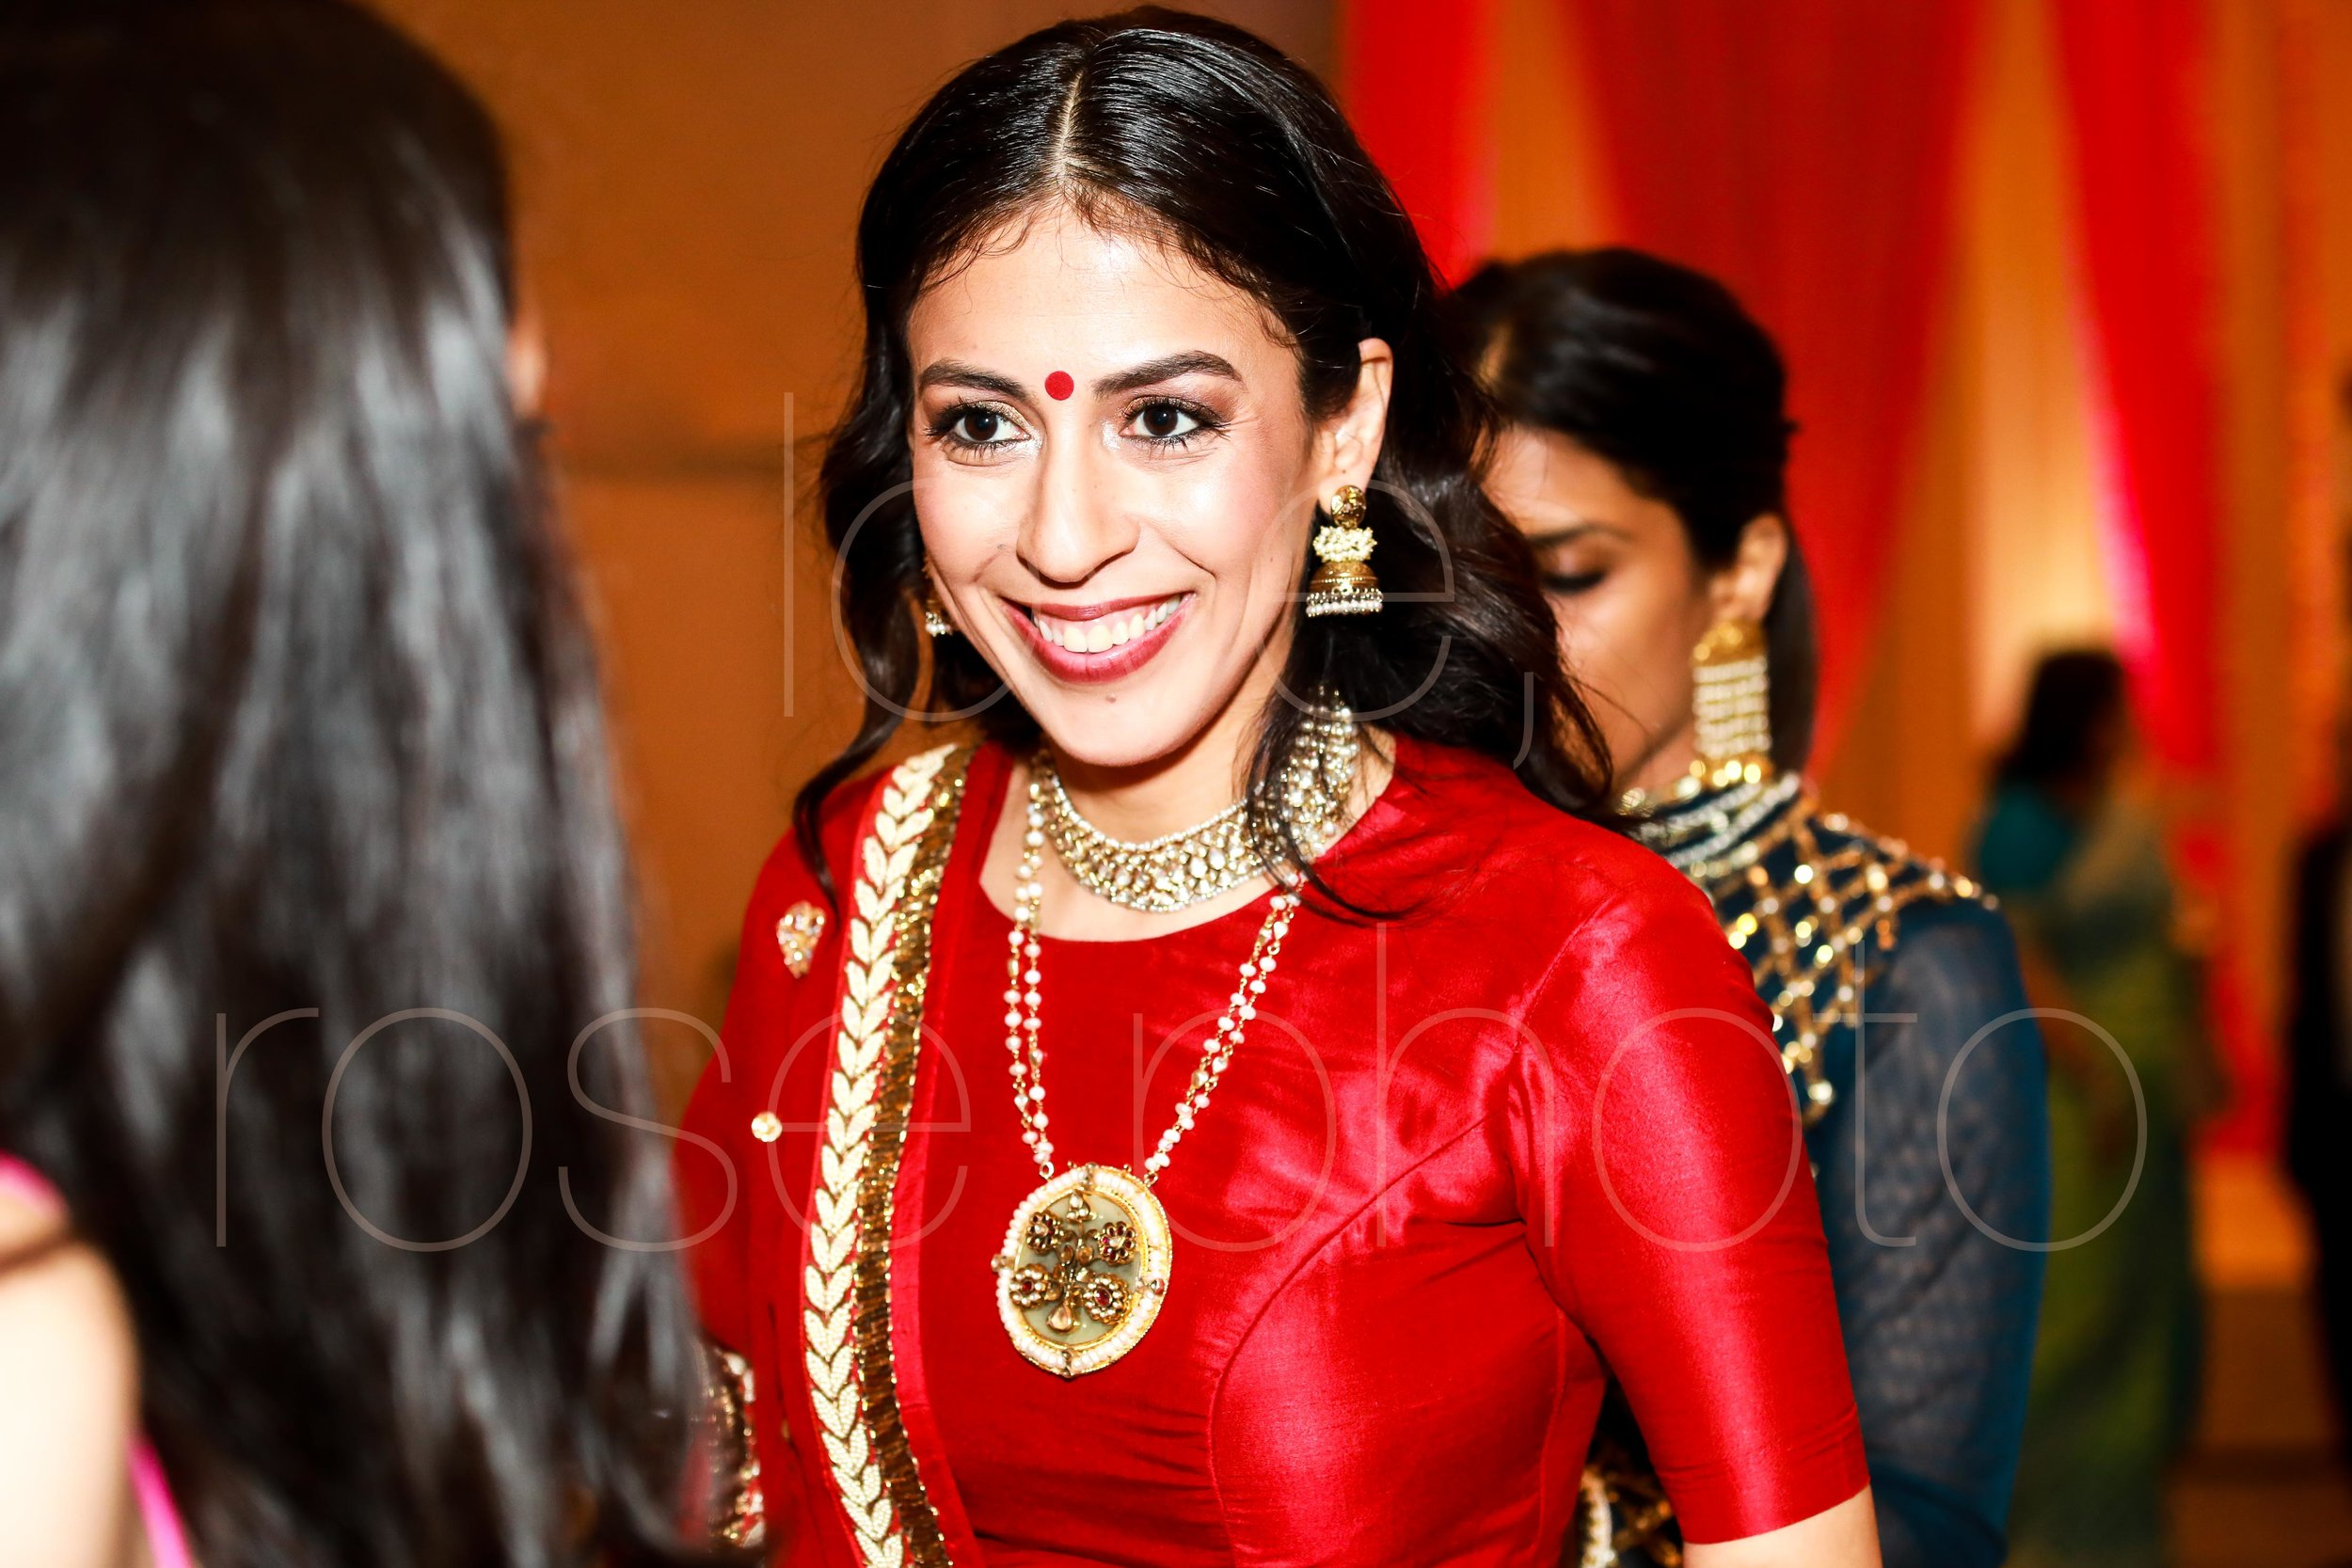 best chicago indian wedding photographer rose photo video collective-24.jpg